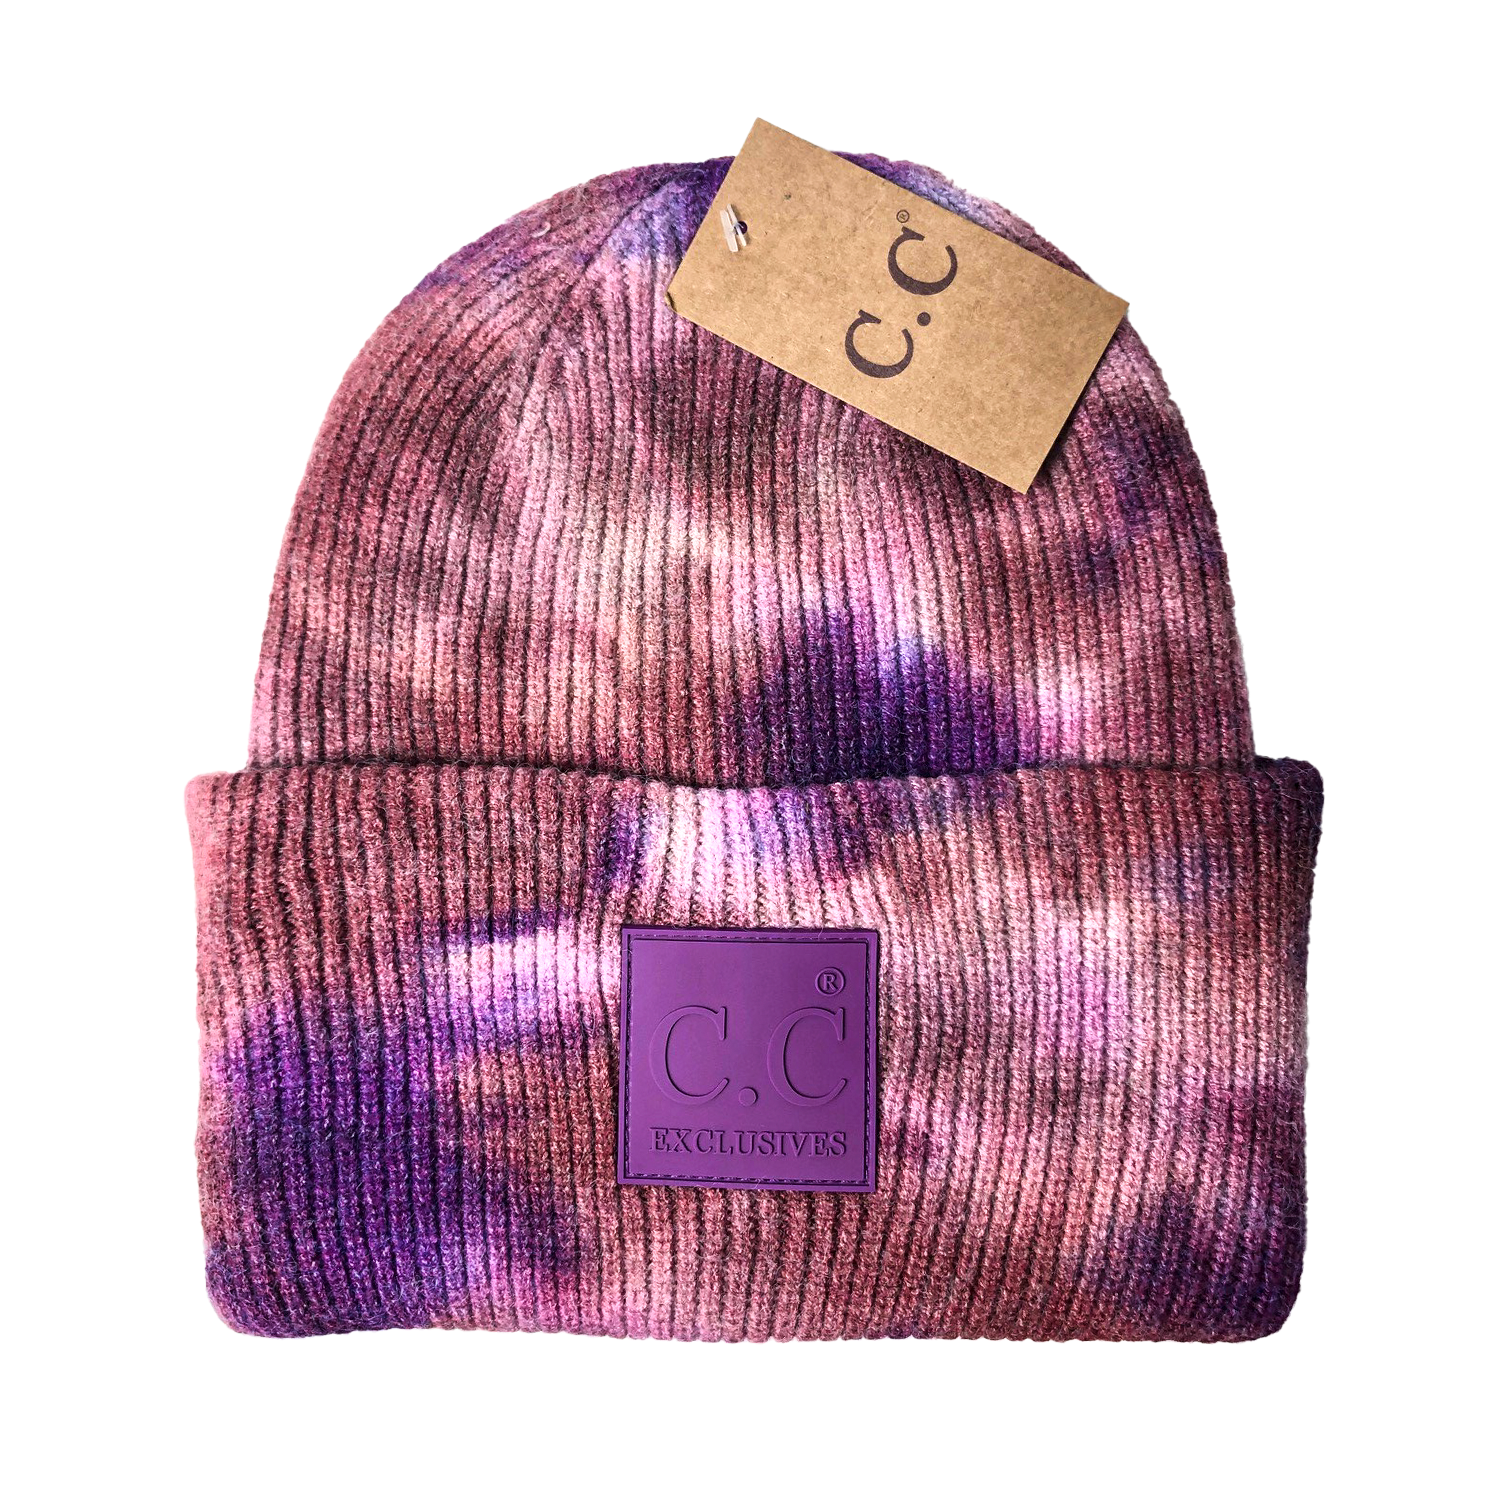 HAT-7380 Tie Dye Beanie with C.C Rubber Patch - Iris/Wild Ginger